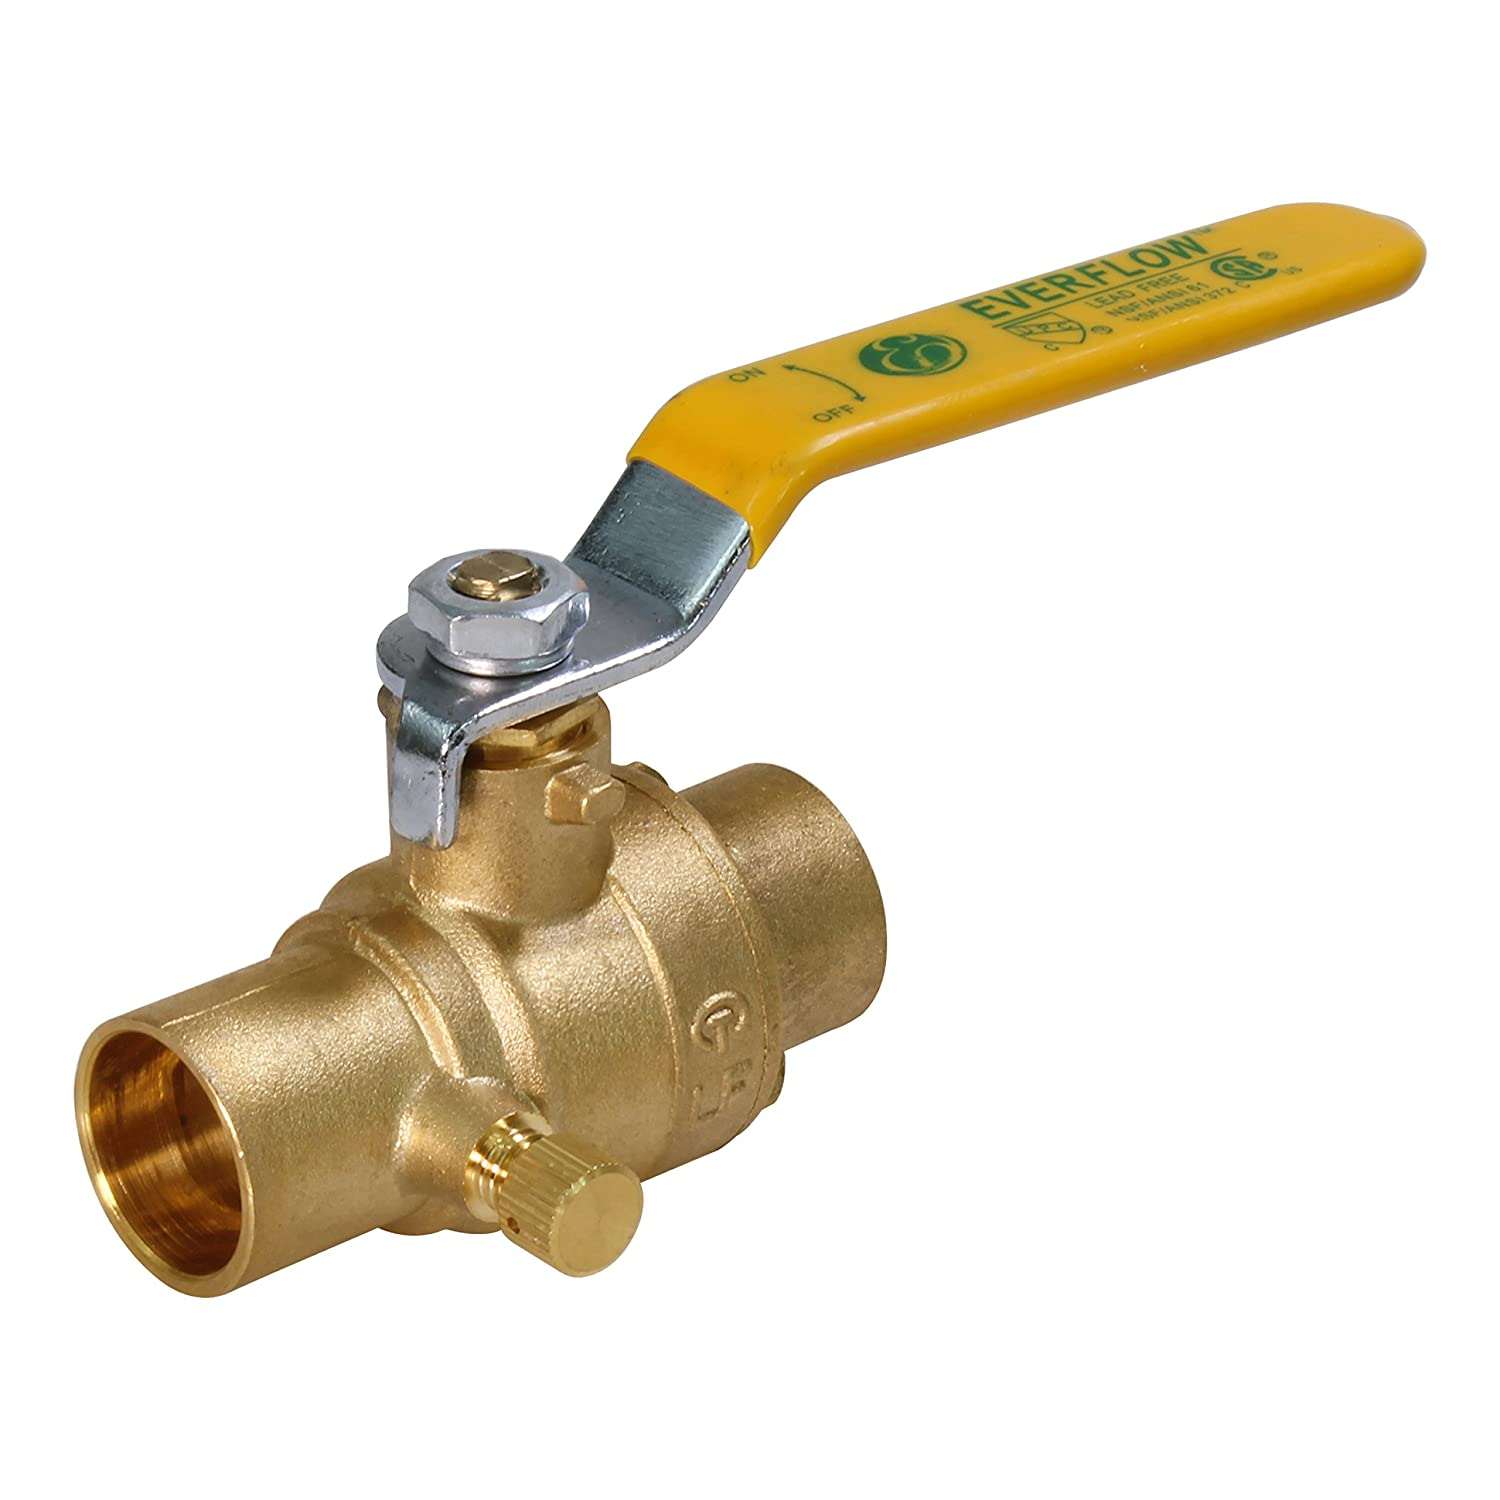 Everflow Supplies 405C034-NL Brass Full Port Ball Valve With Drain 3/4 Inch Sweat - Lead Free